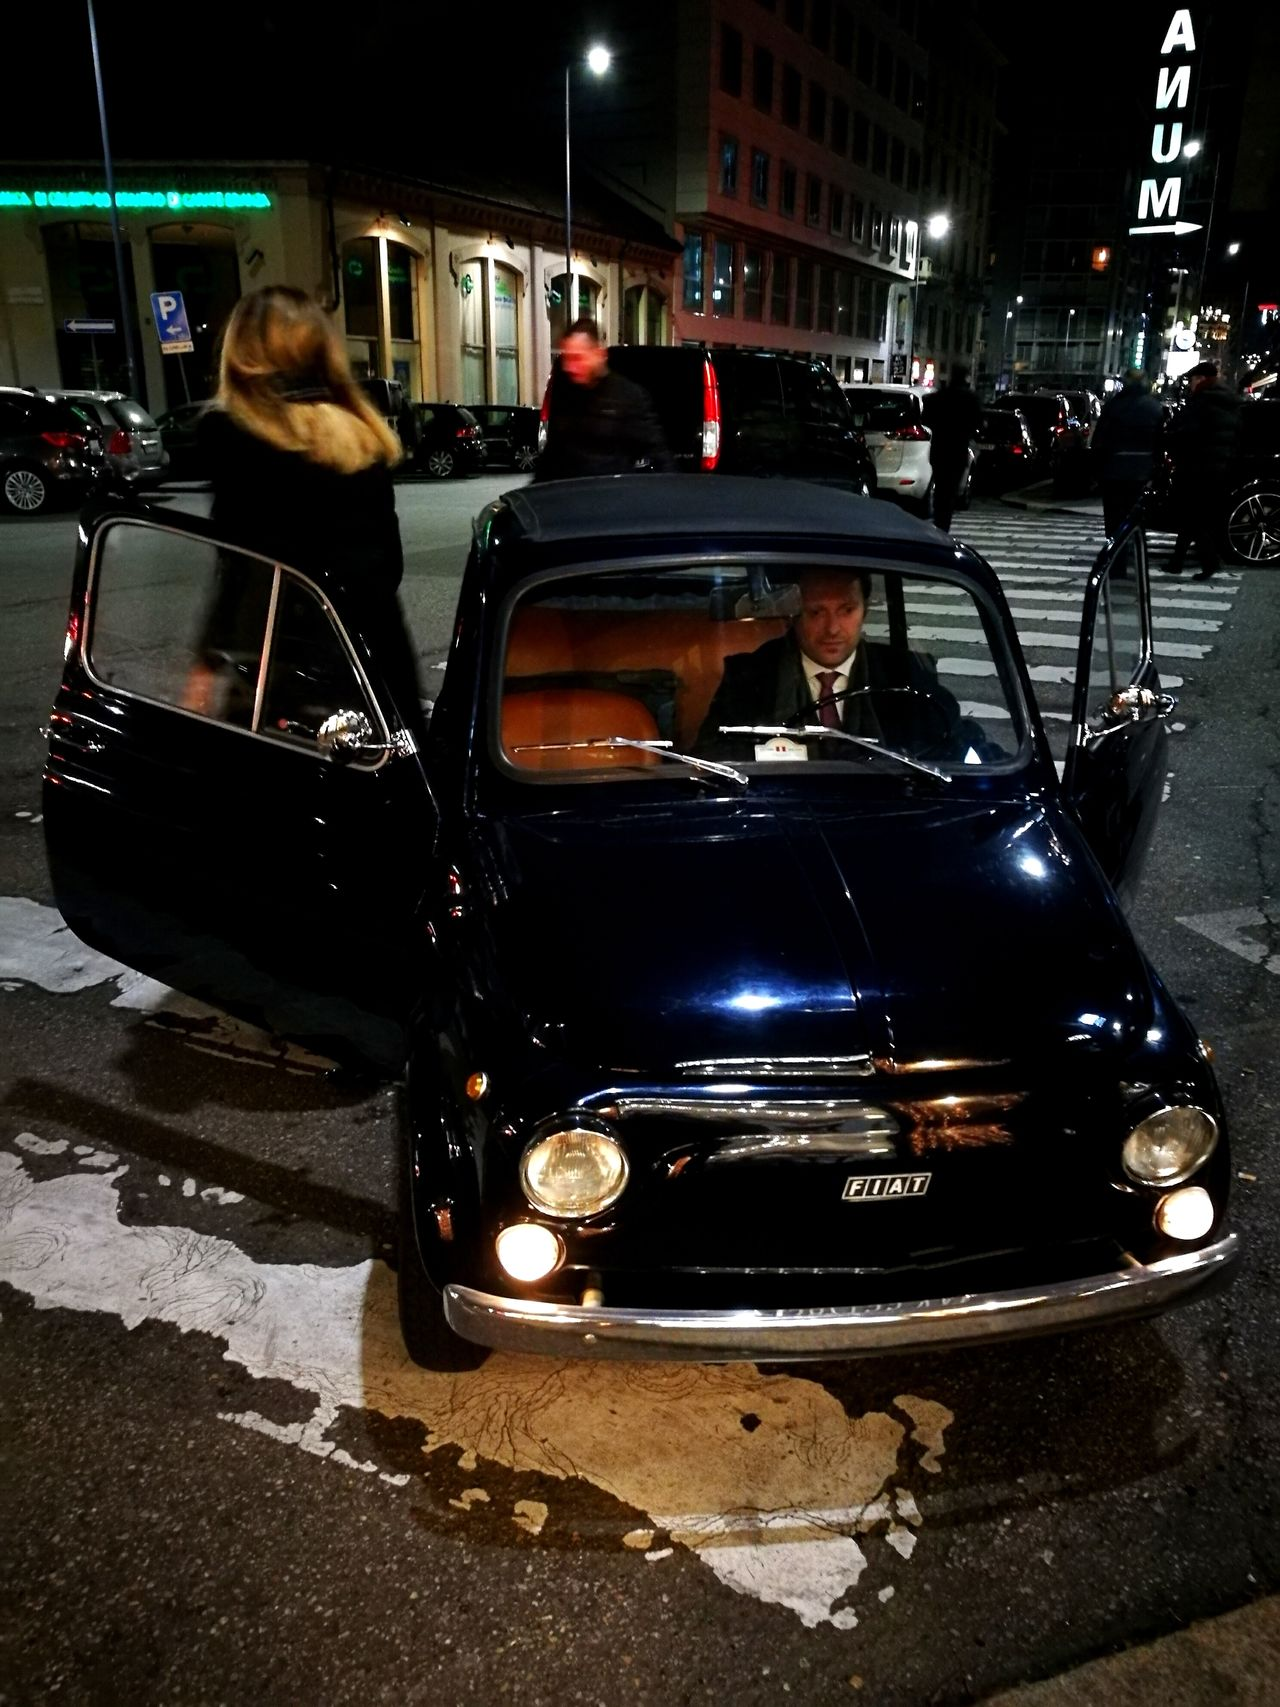 Exploring Style My Year My View Car Transportation Night Land Vehicle Outdoors Light And Shadow Small Car City Car Two Persons Dark Blue Old Style Vintage Cars